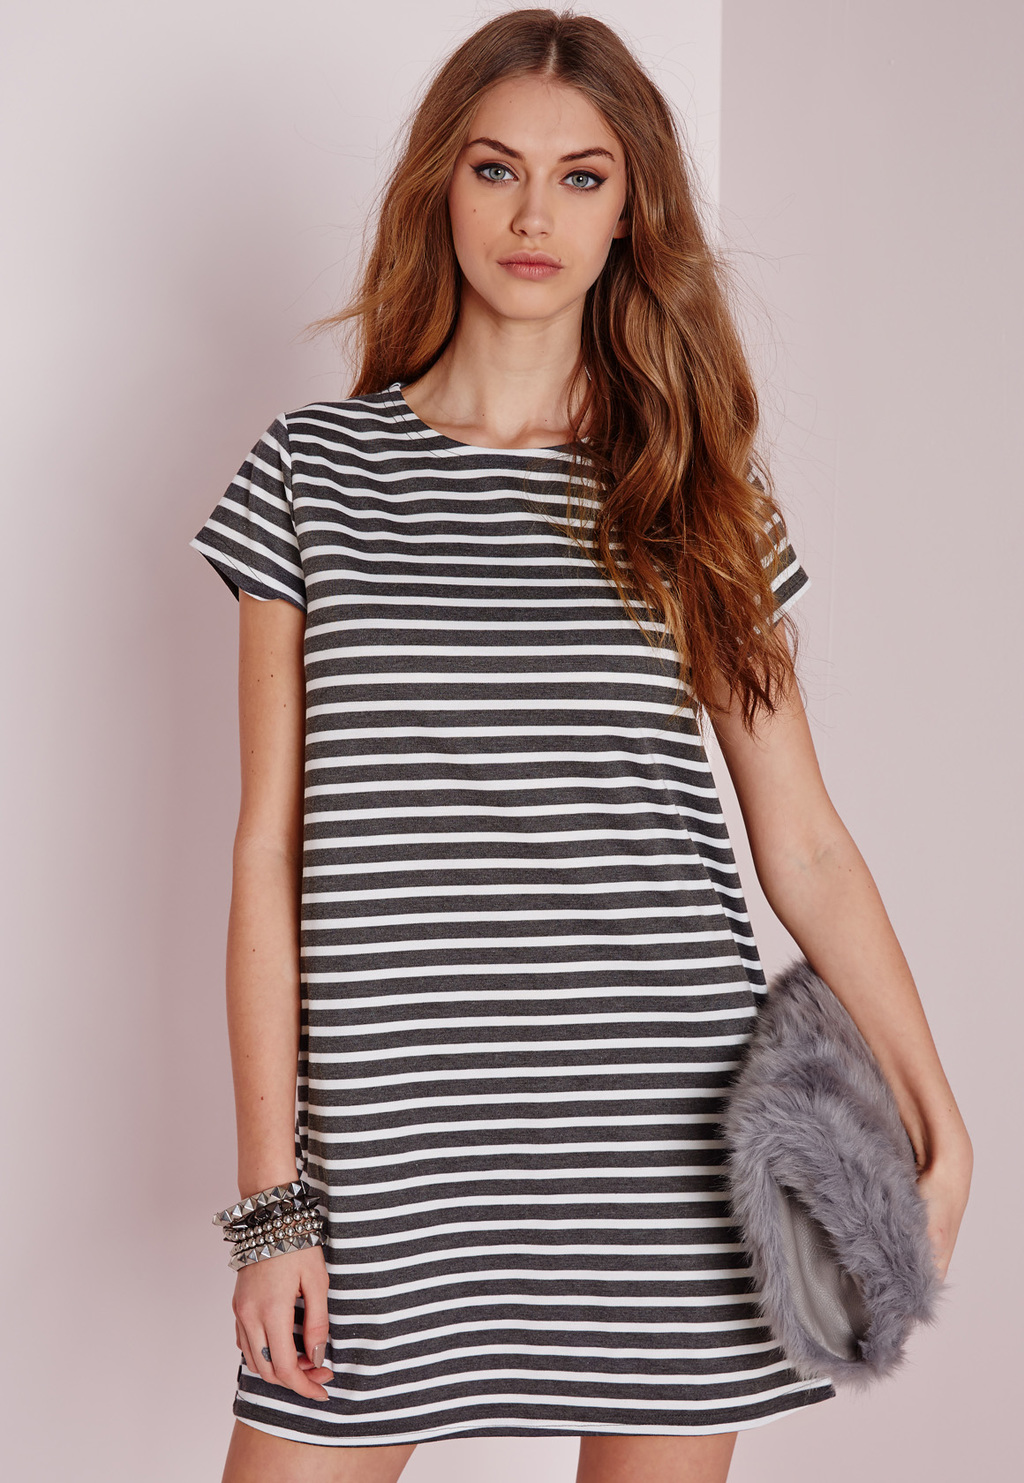 Short Sleeve Stripe Shift Dress Grey, Grey - style: shift; length: mid thigh; pattern: horizontal stripes; secondary colour: white; predominant colour: charcoal; occasions: casual; fit: body skimming; fibres: polyester/polyamide - 100%; neckline: crew; sleeve length: short sleeve; sleeve style: standard; pattern type: fabric; texture group: jersey - stretchy/drapey; season: a/w 2015; wardrobe: basic